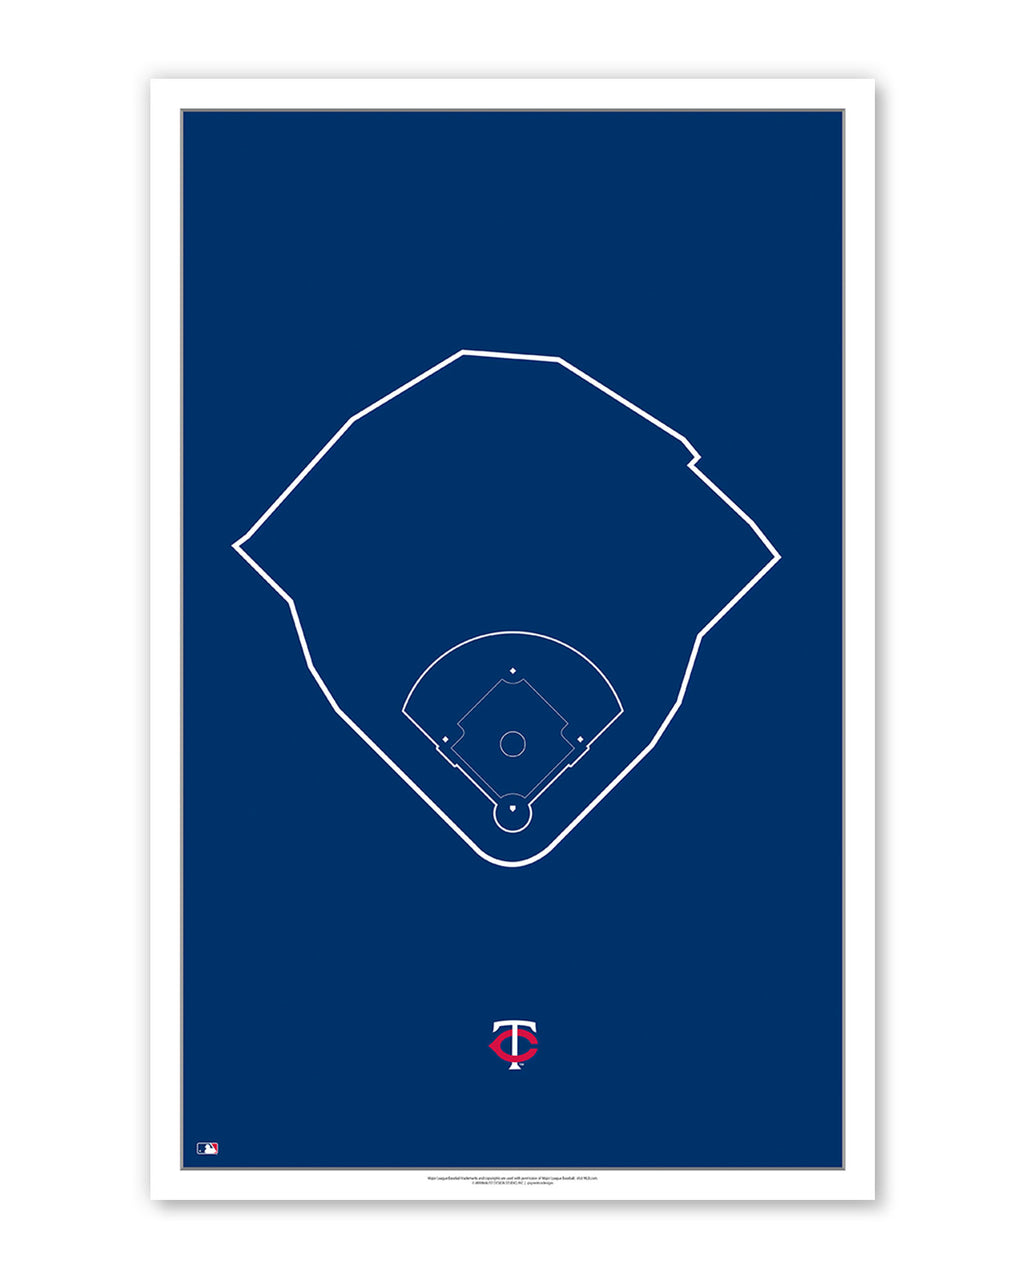 MLB Outline Ballpark - Target Field Minnesota Twins - S Preston